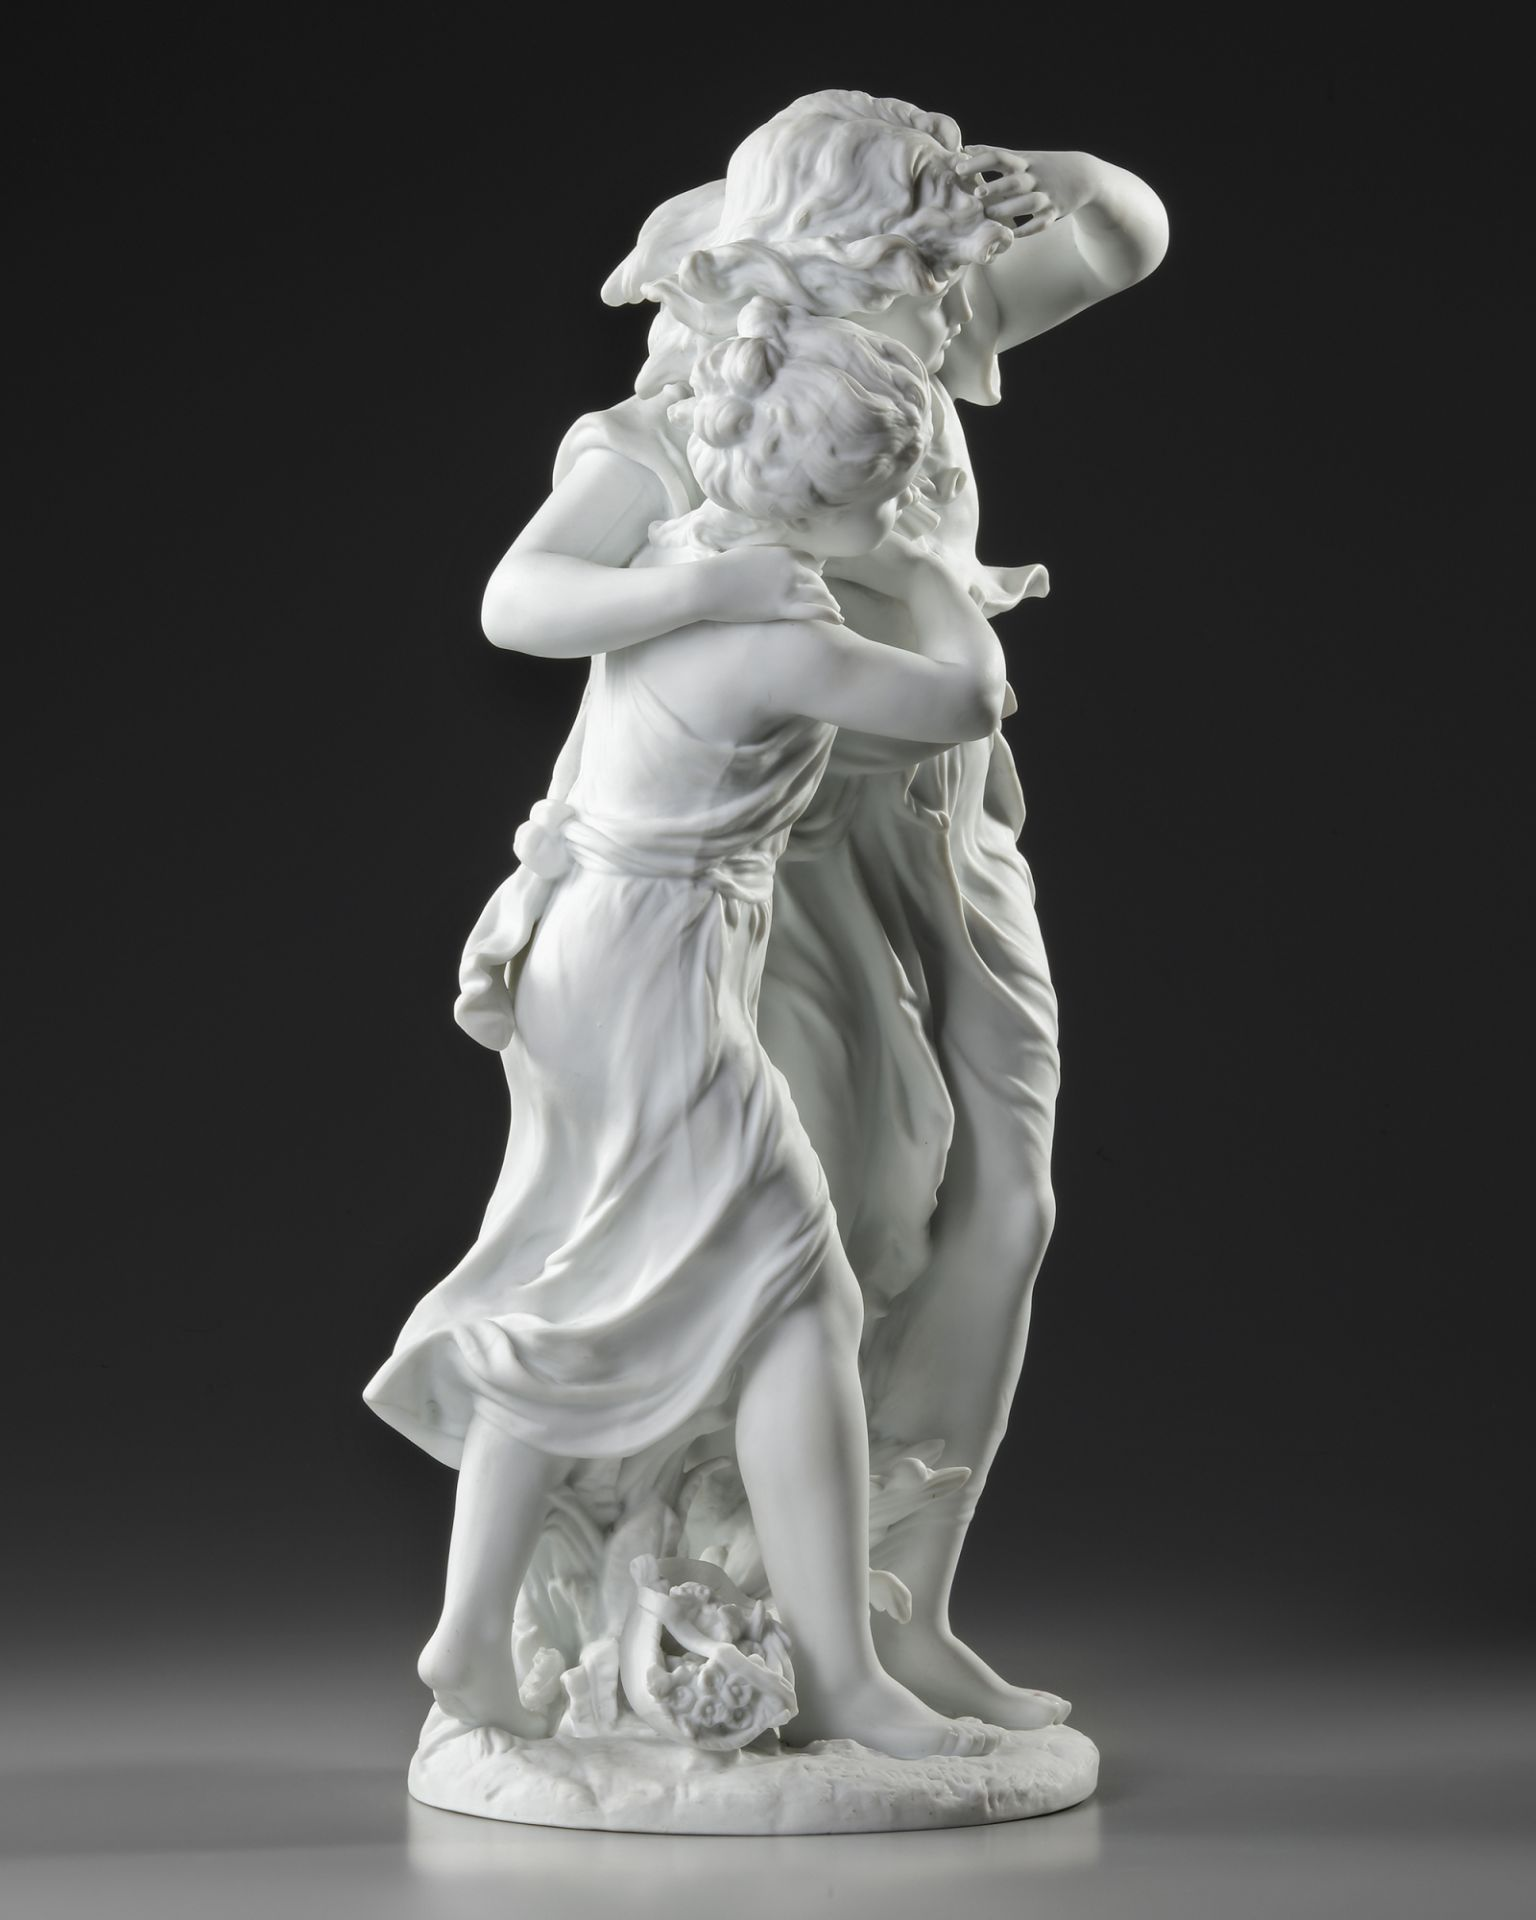 A FRENCH BISCUIT STATUE, SIGNED BY MOREAU (1834-1917) - Image 4 of 5